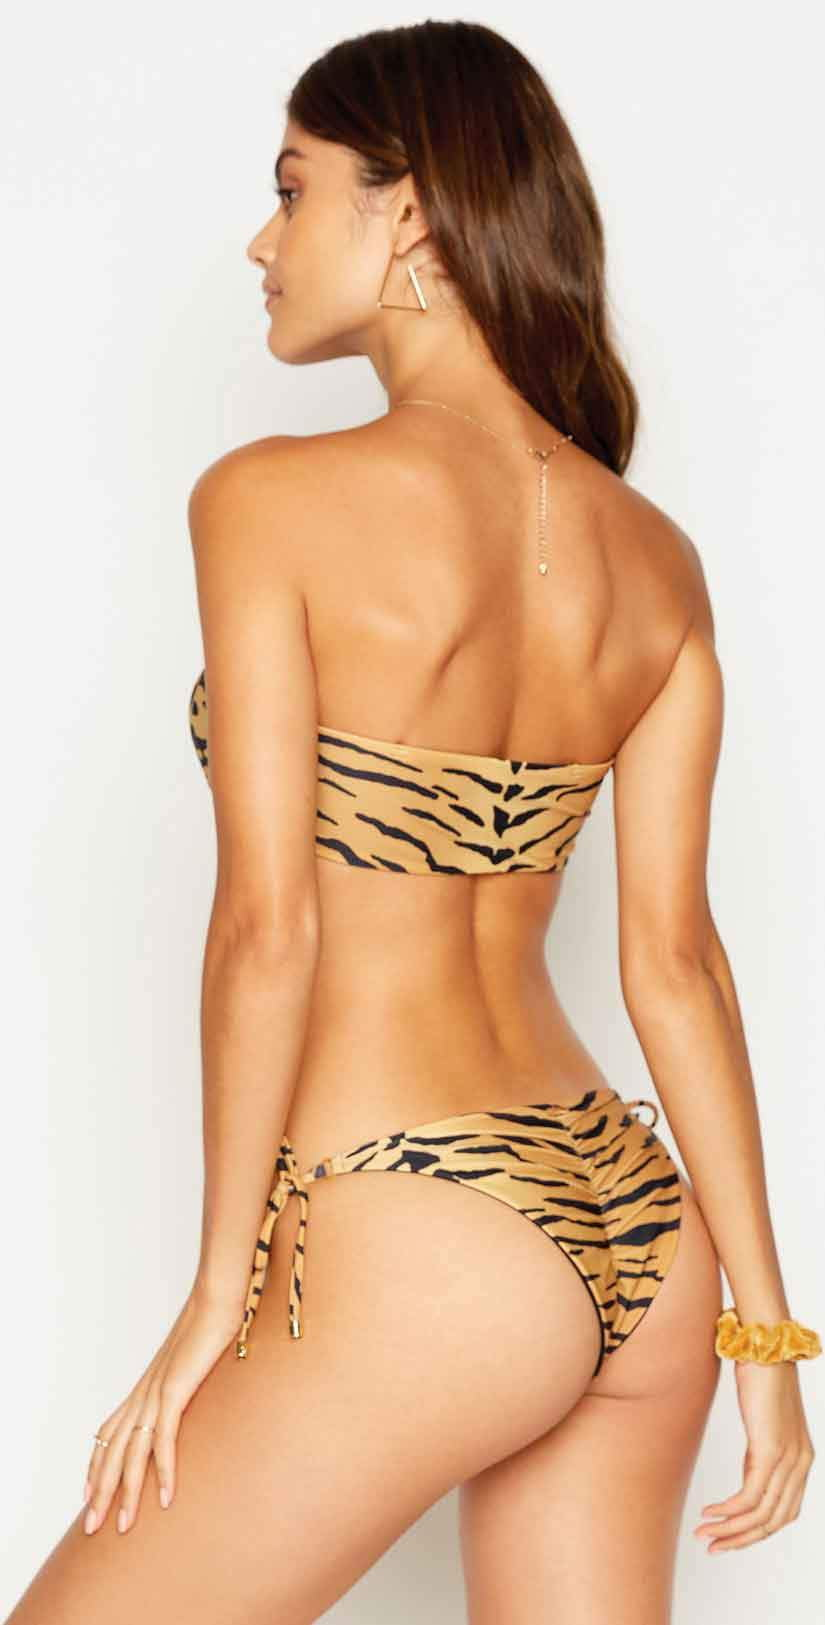 Beach Bunny London Bralette Top in Tiger: